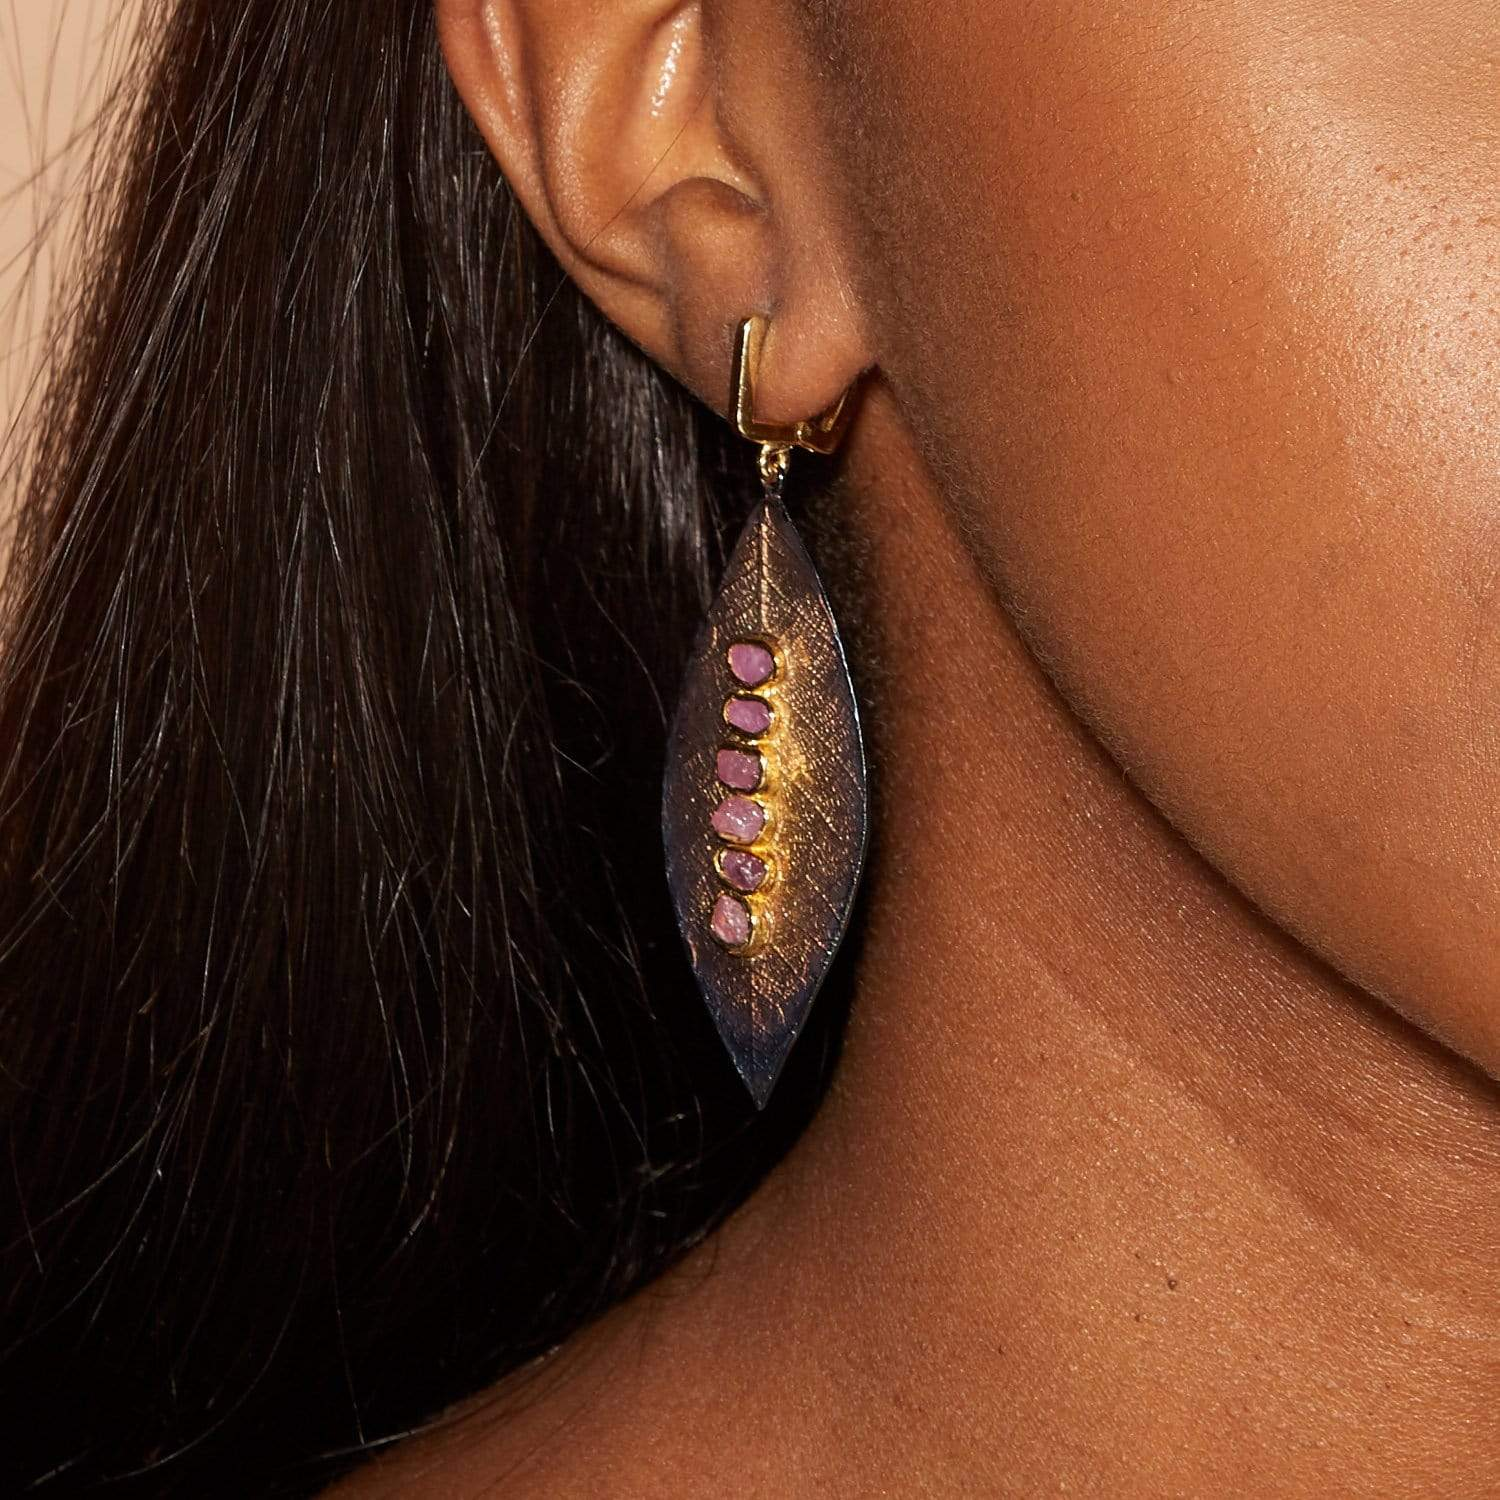 Ilene Earrings, Anthracite, black, Gold, Handmade, Ruby, spo-disabled, StoneColor:PinkRuby, Style:Fantasy, Type:StoneCandyScattered Earrings